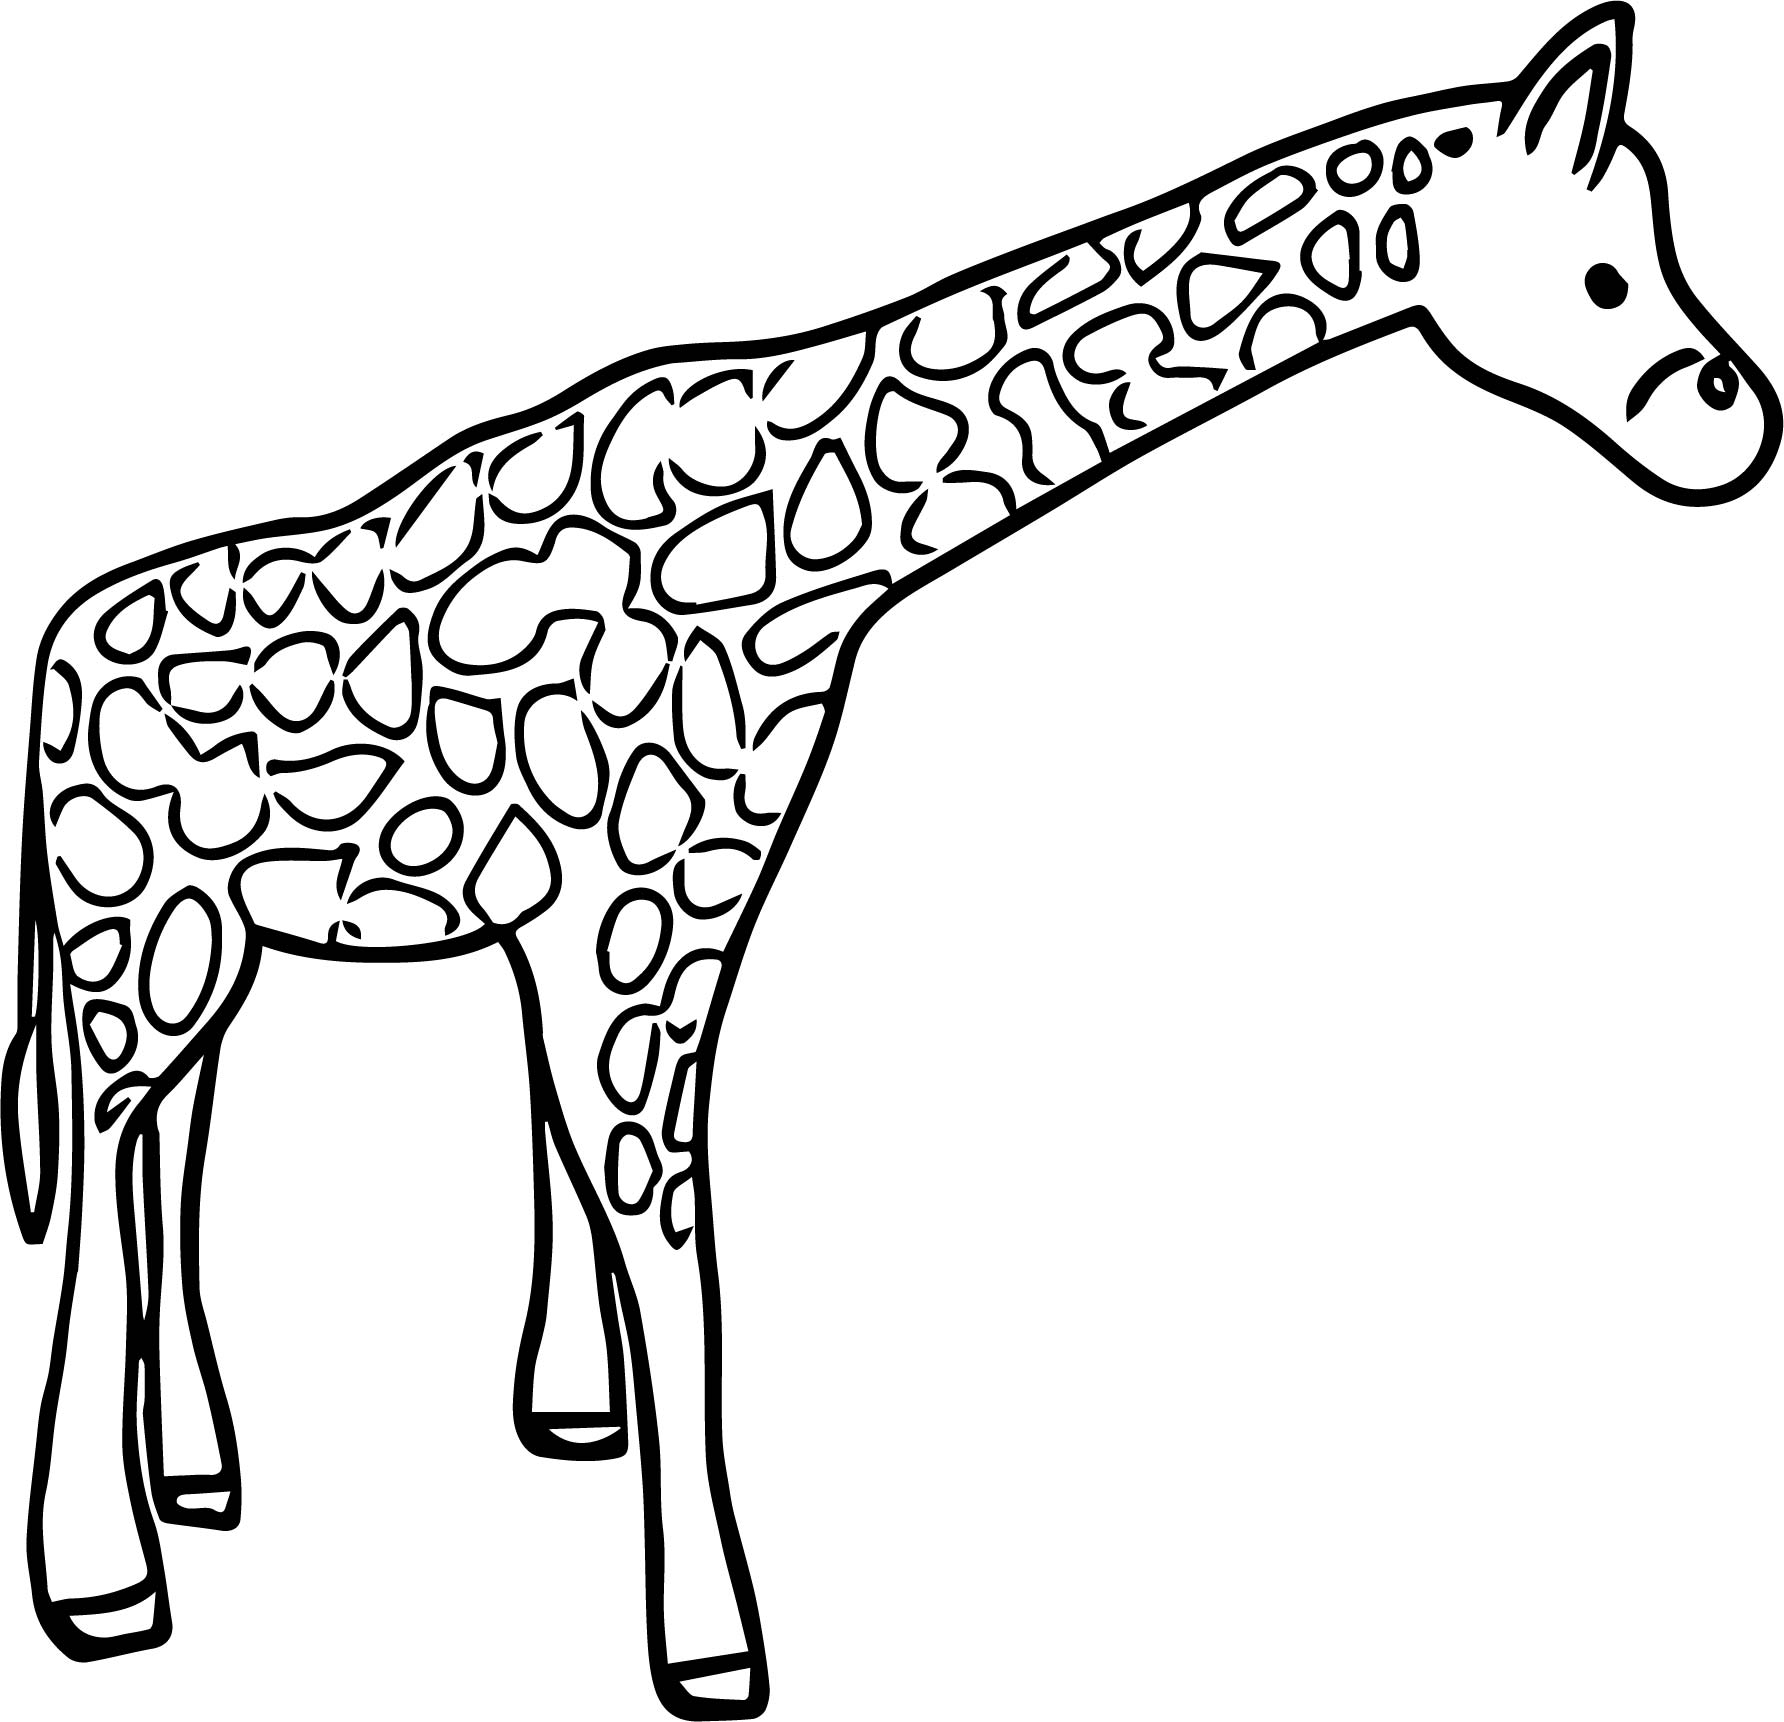 Giraffe Thoughtful Coloring Page